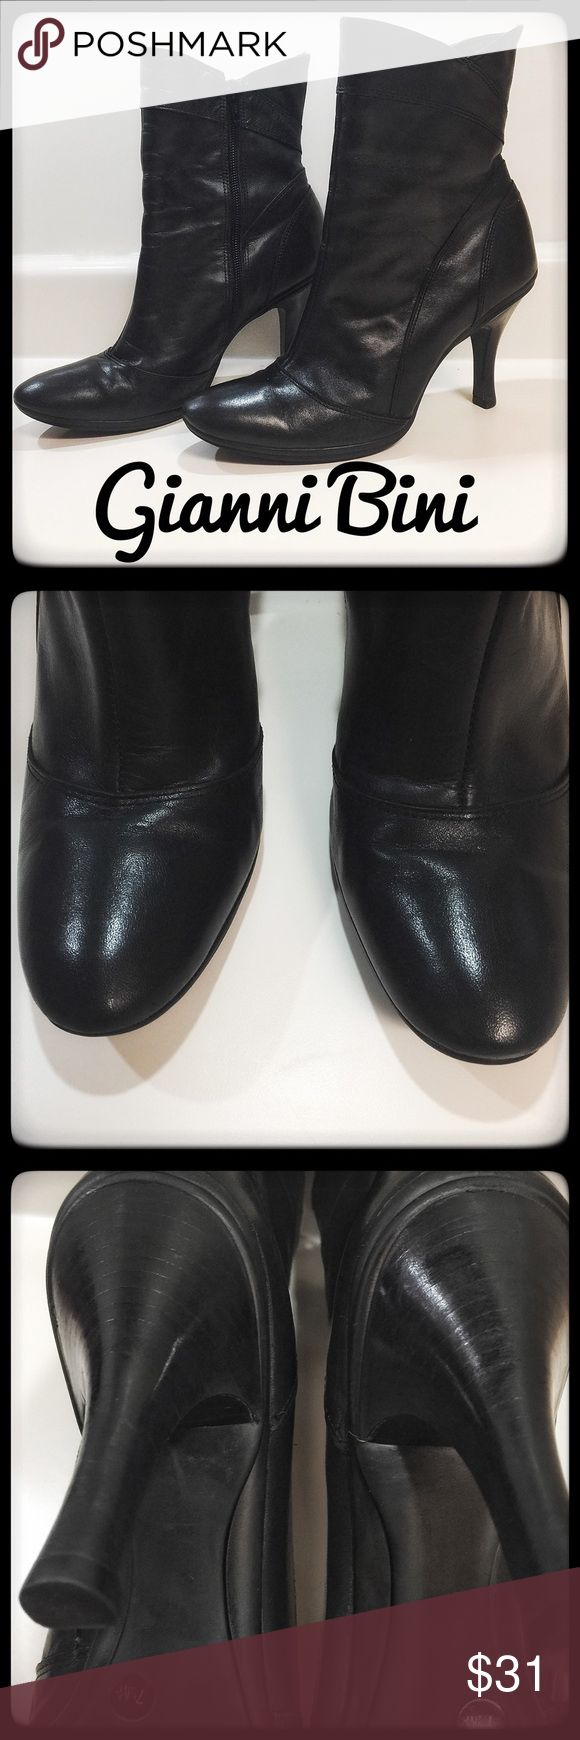 Gianni Bini 💯 Black Leather Short Boots Black short leather boots (booties) by Gianni Bini. The design is a classic heeled one, with the designer edge of a slightly flared top. Truly beautiful design with the zest Gianni Bini is known for. These are in great condition and ready to enjoy! Gianni Bini Shoes Ankle Boots & Booties